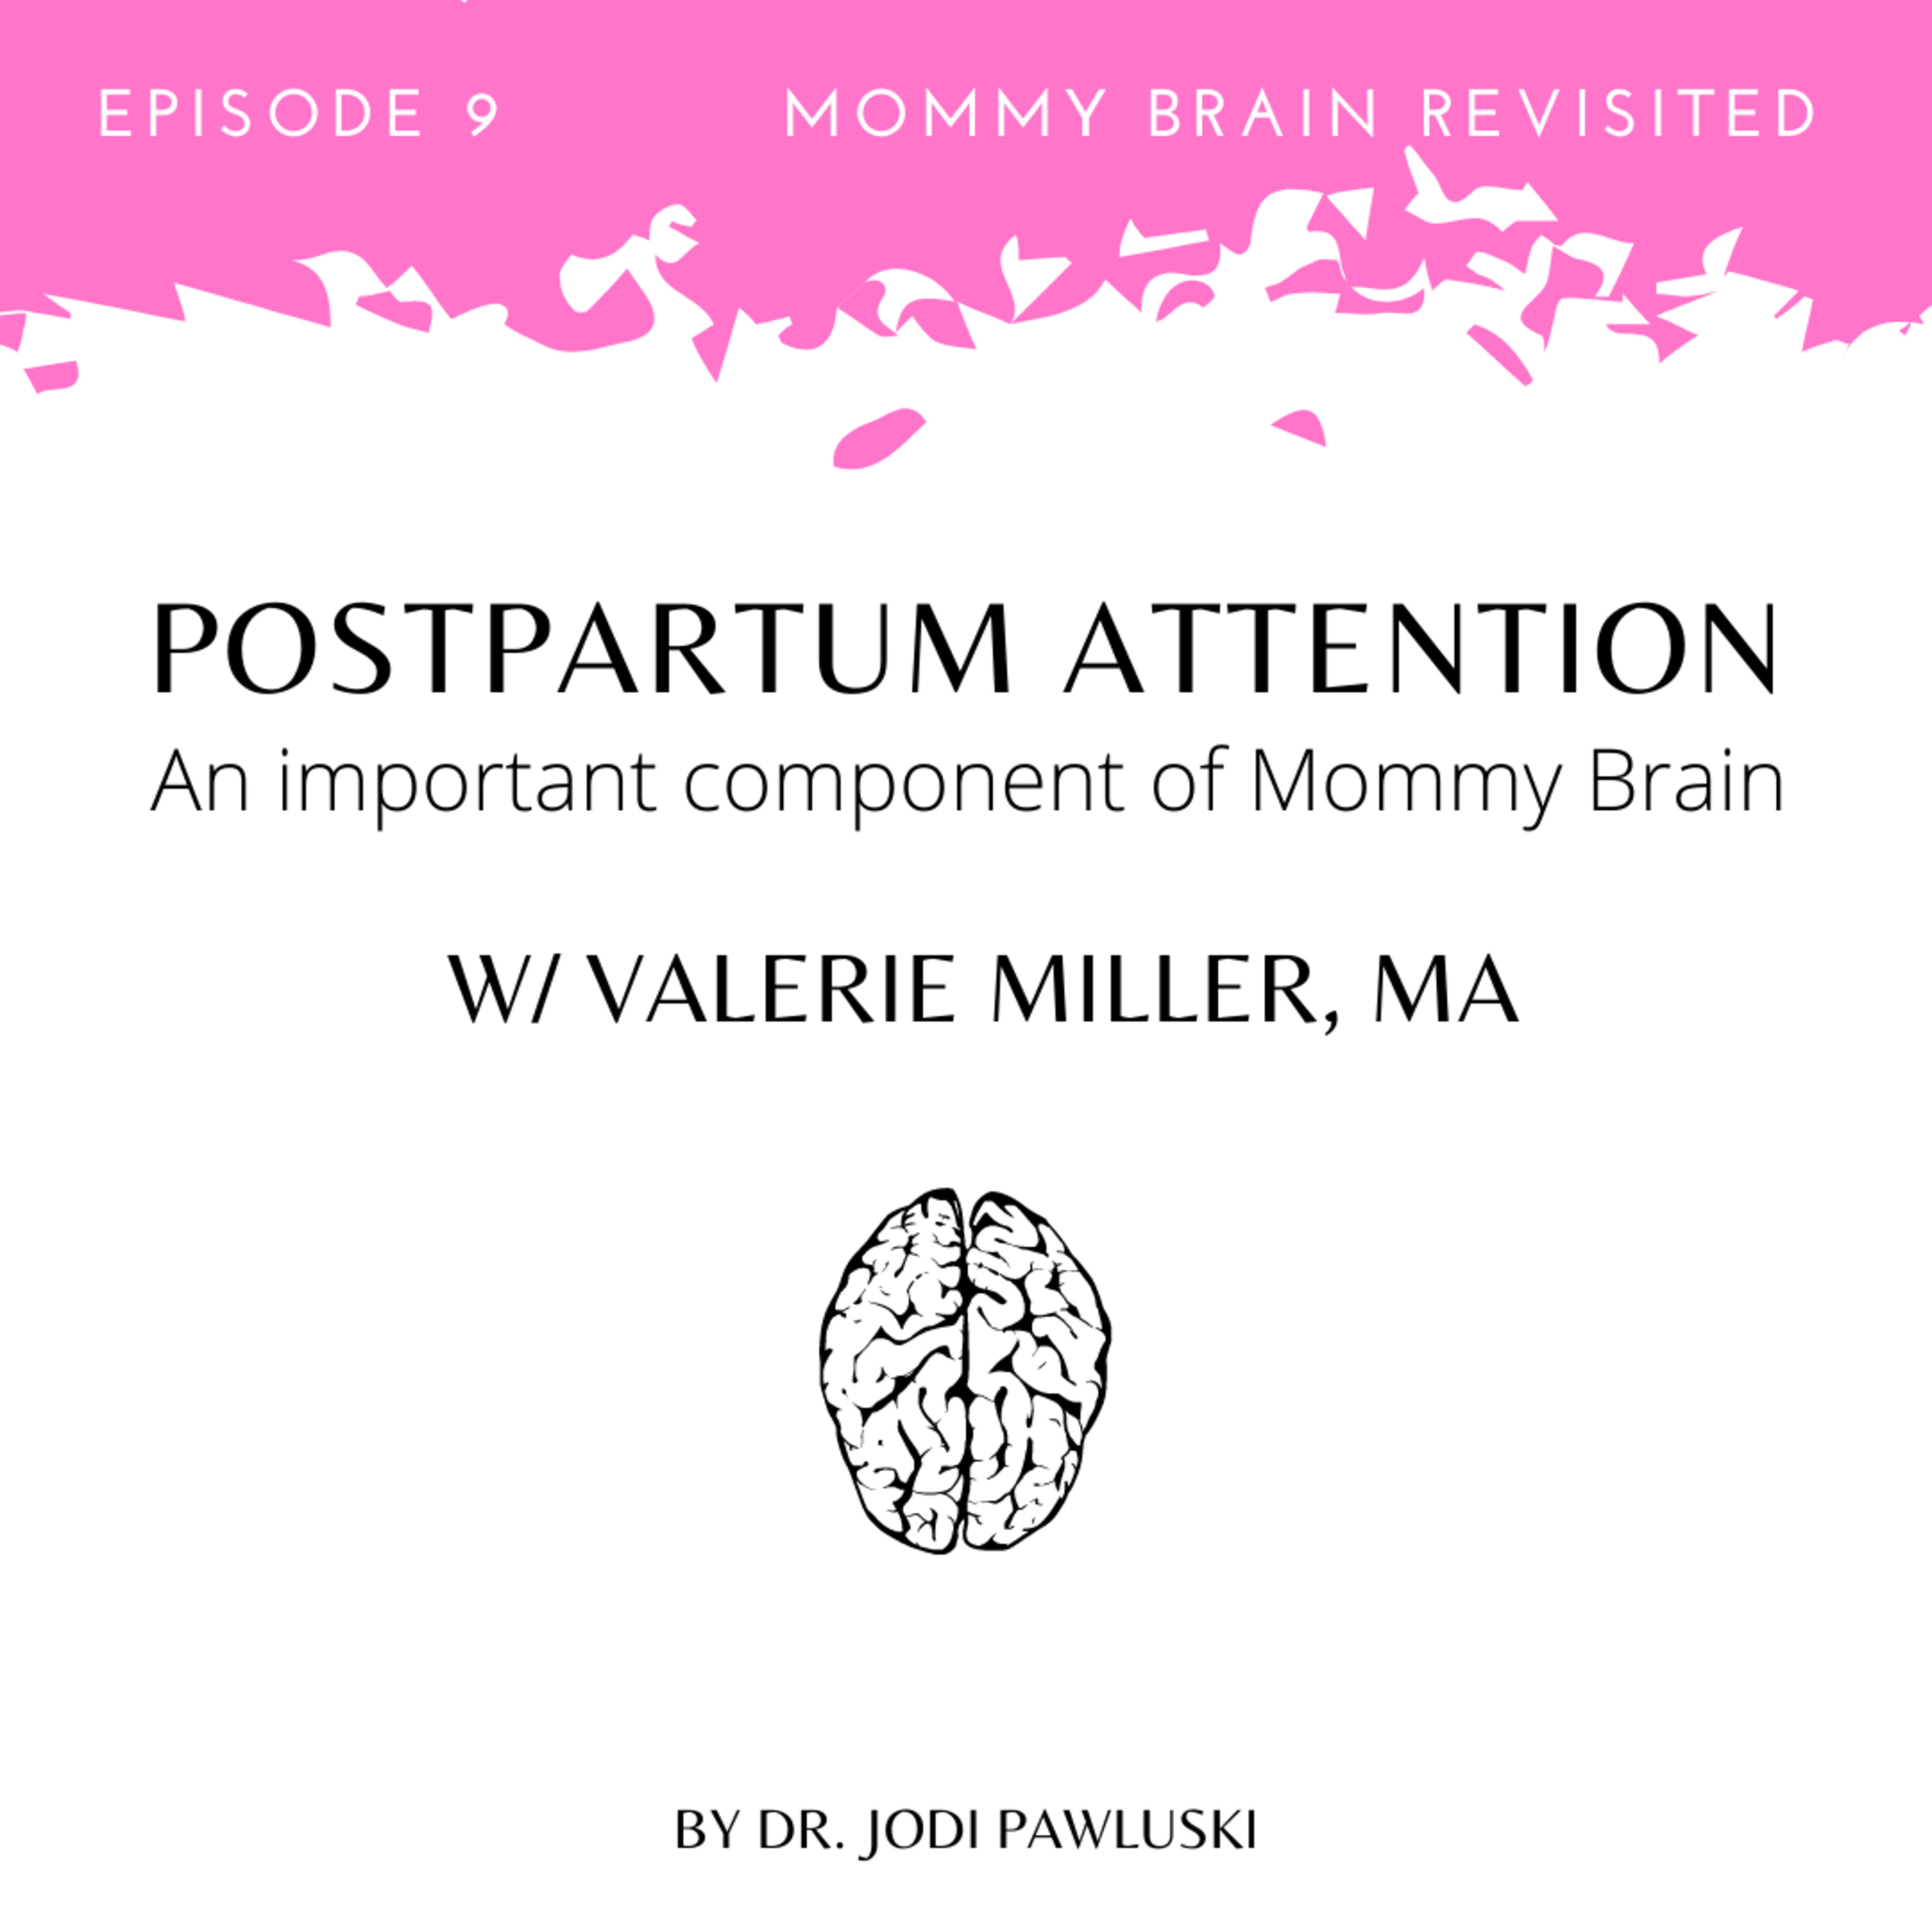 9. Postpartum Attention: An important component of Mommy Brain